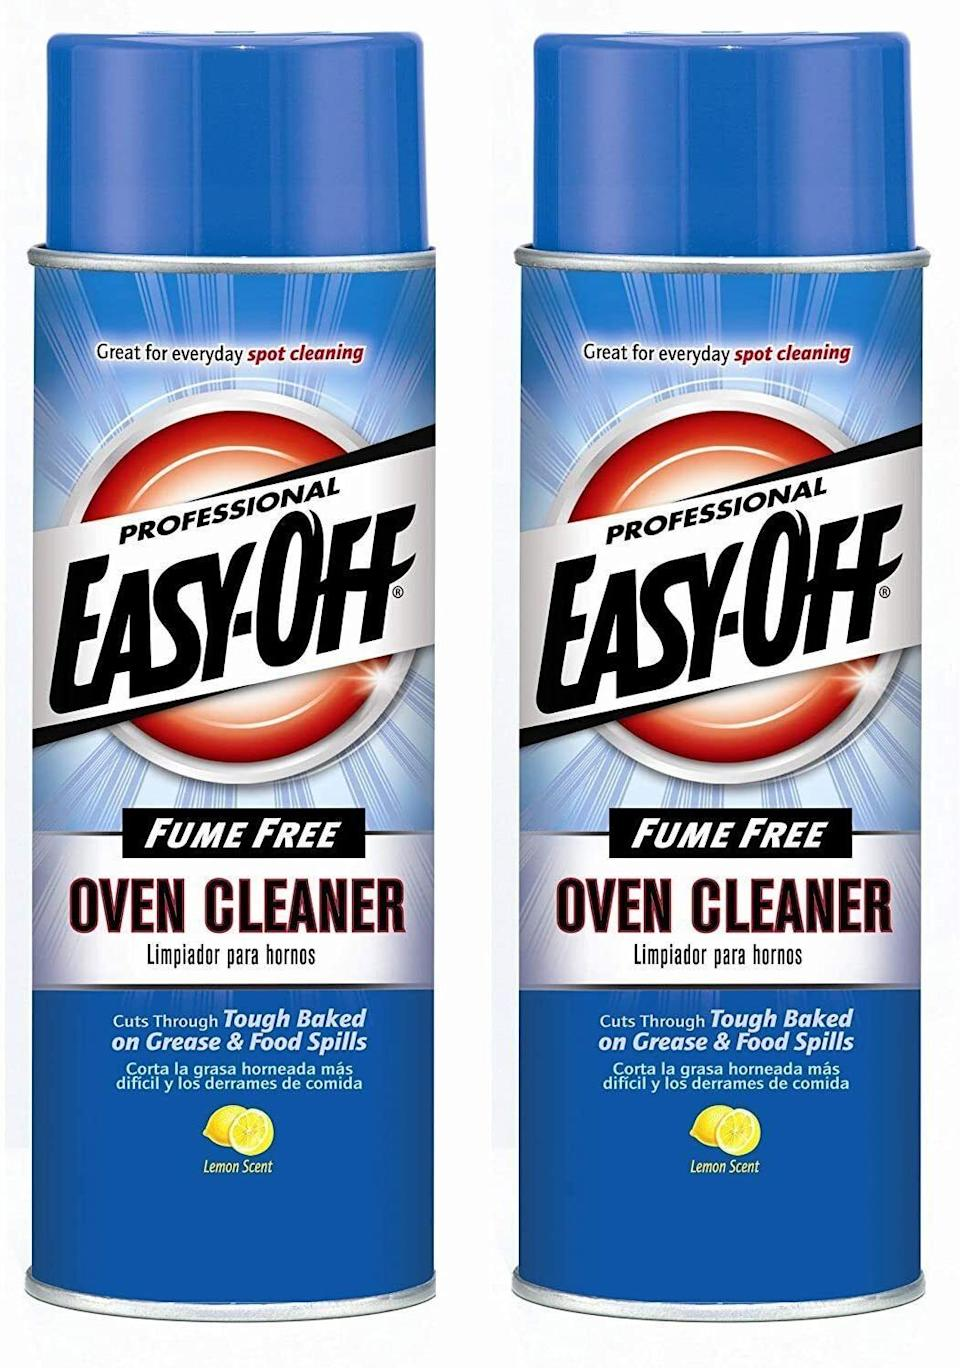 """If youstillhave some caked-on nastiness in your oven from Thanksgiving, it's time to add to cart.<br /><strong><br />Promising review:</strong>""""Oh man, this stuff is awesome! I sprayed and left it on overnight. I had no idea what to expect. I took a paper towel and started wiping out the oven. The grime just melted away. It was awesome!"""" —<a href=""""https://amzn.to/3fYhNGk"""" target=""""_blank"""" rel=""""nofollow noopener noreferrer"""" data-skimlinks-tracking=""""5892474"""" data-vars-affiliate=""""Amazon"""" data-vars-asin=""""B00UZNYHR4"""" data-vars-href=""""https://www.amazon.com/gp/customer-reviews/R2ZMLFUU69T41L?tag=bfdaniel-20&ascsubtag=5892474%2C1%2C33%2Cmobile_web%2C0%2C0%2C16507716"""" data-vars-keywords=""""cleaning"""" data-vars-link-id=""""16507716"""" data-vars-price="""""""" data-vars-product-id=""""16631235"""" data-vars-product-img=""""https://m.media-amazon.com/images/I/31YkiM6OAJL.jpg"""" data-vars-product-title=""""Illume Thai Lily Vanity Tin, 11.8oz Candle, 11.8 oz, Pink"""" data-vars-retailers=""""Amazon"""">KsGrl444</a><br /><br /><strong>Get a pack of two from Amazon for<a href=""""https://amzn.to/3wKdULa"""" target=""""_blank"""" rel=""""nofollow noopener noreferrer"""" data-skimlinks-tracking=""""5892474"""" data-vars-affiliate=""""Amazon"""" data-vars-asin=""""B07VVB9R8M"""" data-vars-href=""""https://www.amazon.com/dp/B07VVB9R8M?tag=bfdaniel-20&ascsubtag=5892474%2C1%2C33%2Cmobile_web%2C0%2C0%2C16507689"""" data-vars-keywords=""""cleaning"""" data-vars-link-id=""""16507689"""" data-vars-price="""""""" data-vars-product-id=""""10152940"""" data-vars-product-img=""""https://m.media-amazon.com/images/I/51xPxigX8KL.jpg"""" data-vars-product-title=""""Easy Off 74017 24 Oz Lemon Scent Fume Free Oven Cleaner"""" data-vars-retailers=""""Amazon"""">$22.97</a>.</strong>"""